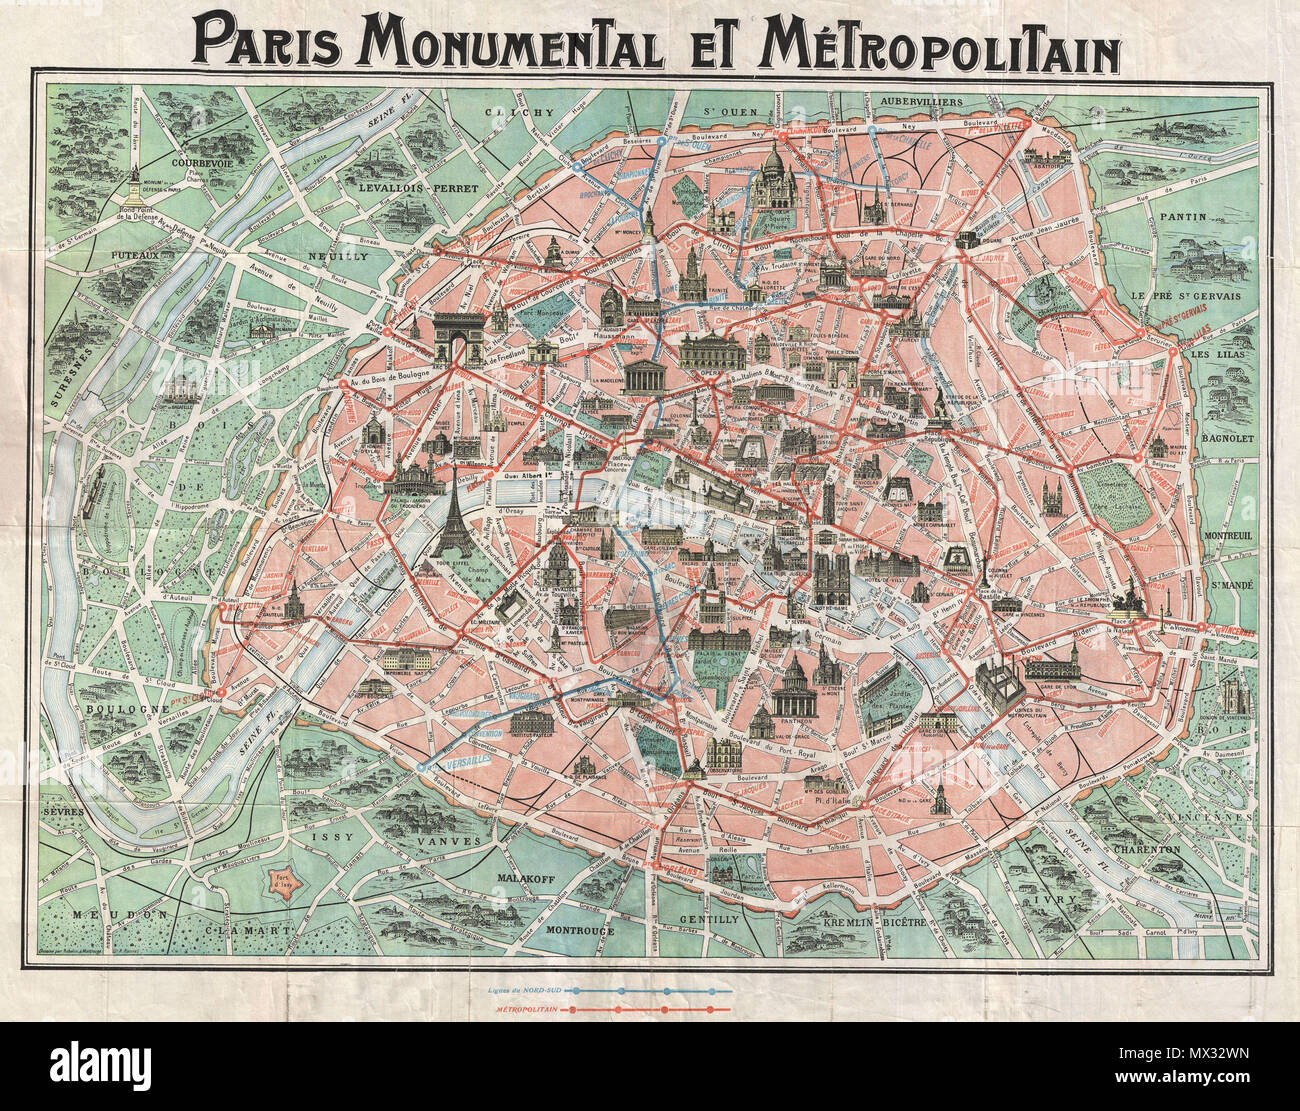 Subway Map Paris English.Paris Monumental Et Metropolitain English This Is An Extremely